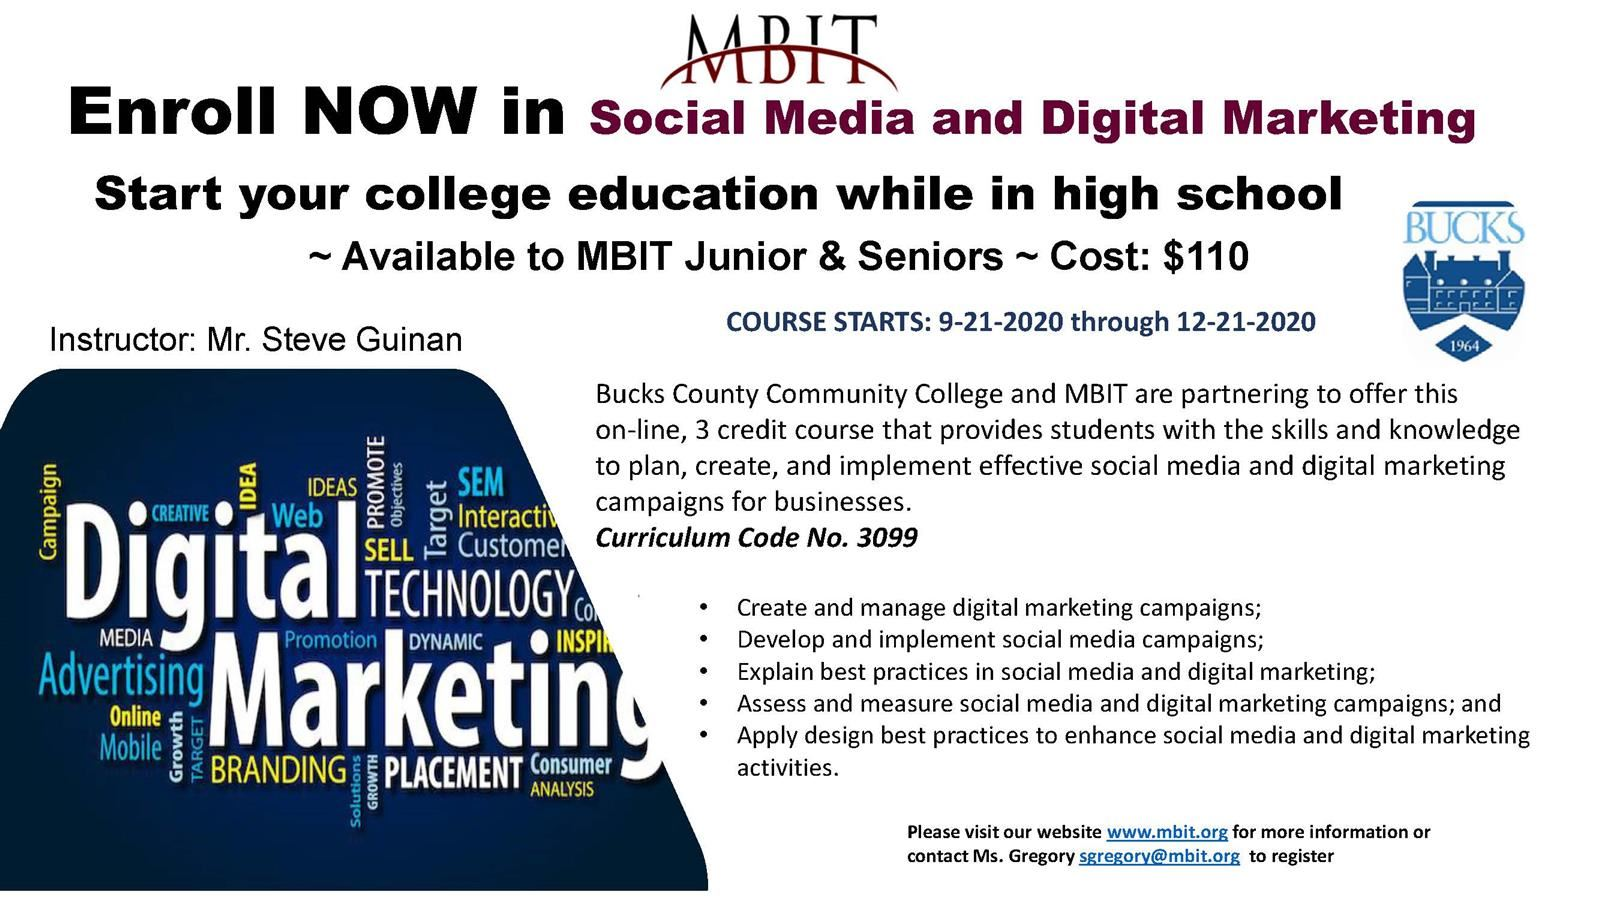 3 Credit Course!  Bucks County Community College & MBIT Social Media and Digital Marketing course is available for juniors and seniors!